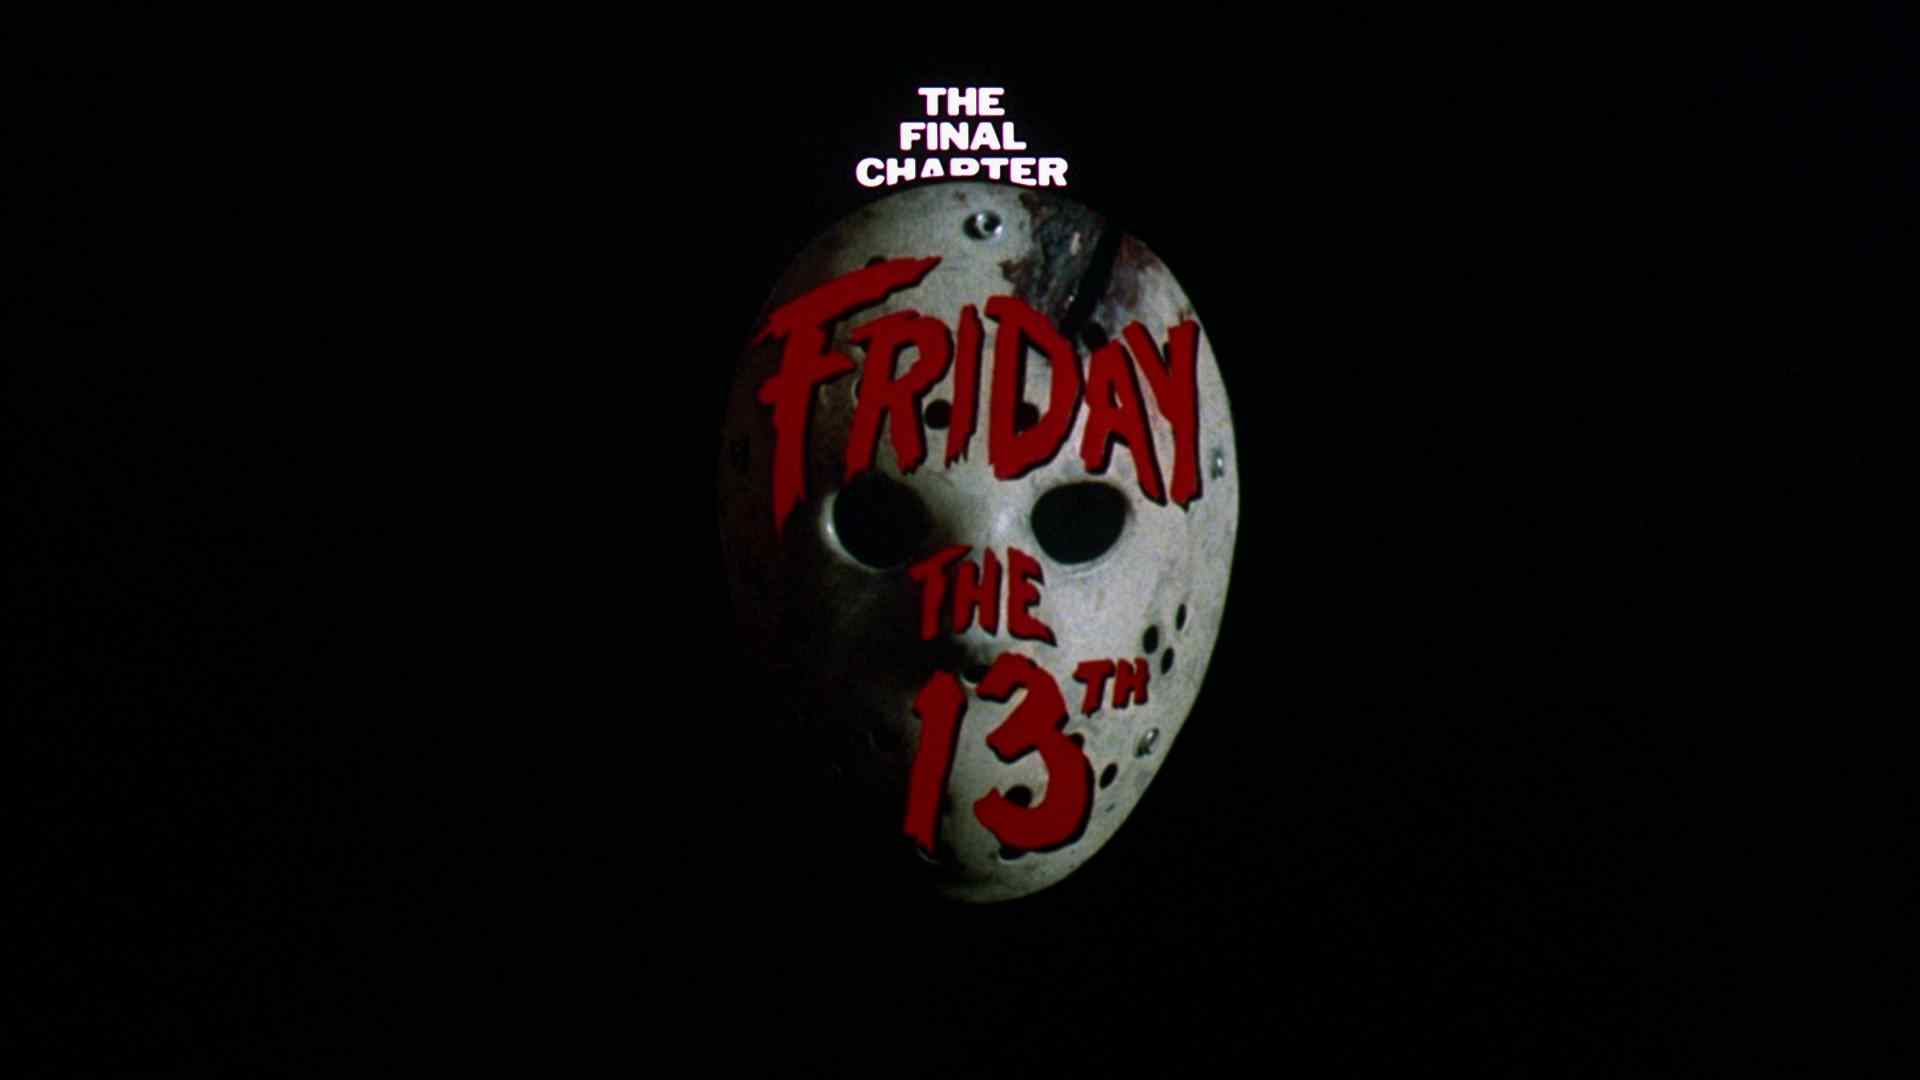 Title card in Friday the 13th - The Final Chapter